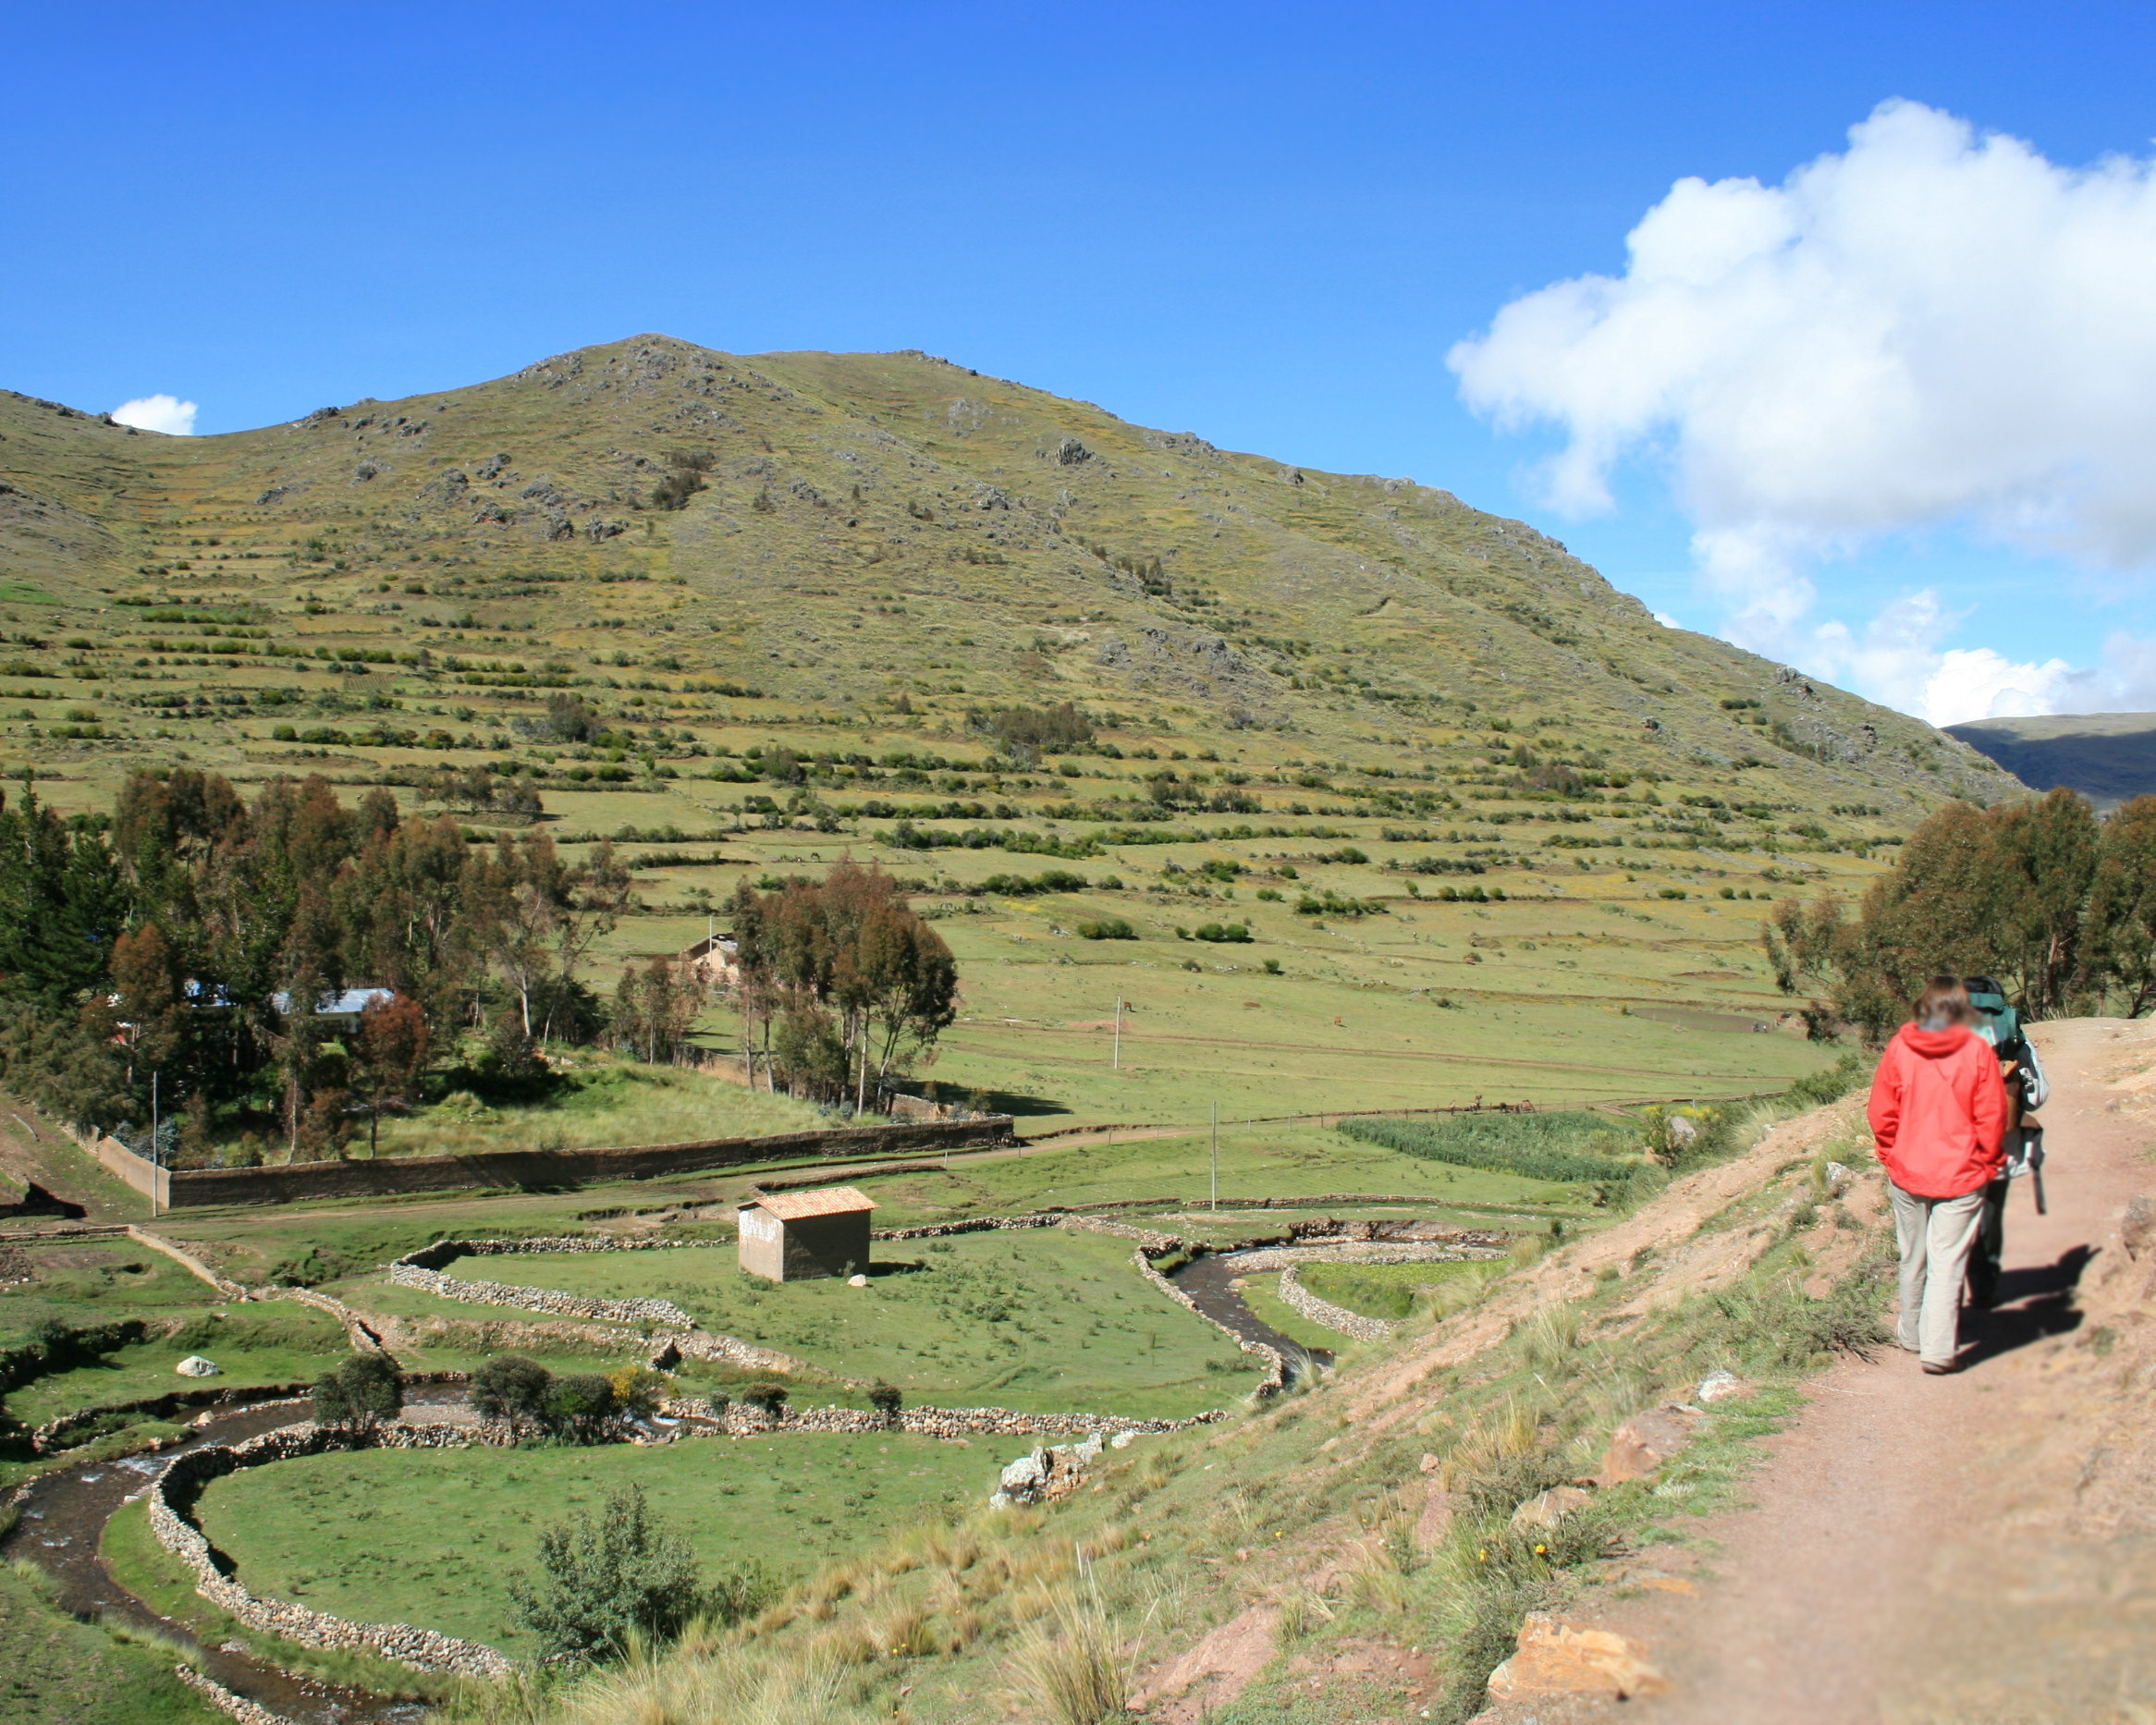 Traditional Andean landscape, Peru (Photo: Khanh Tran-Thanh/IIED)